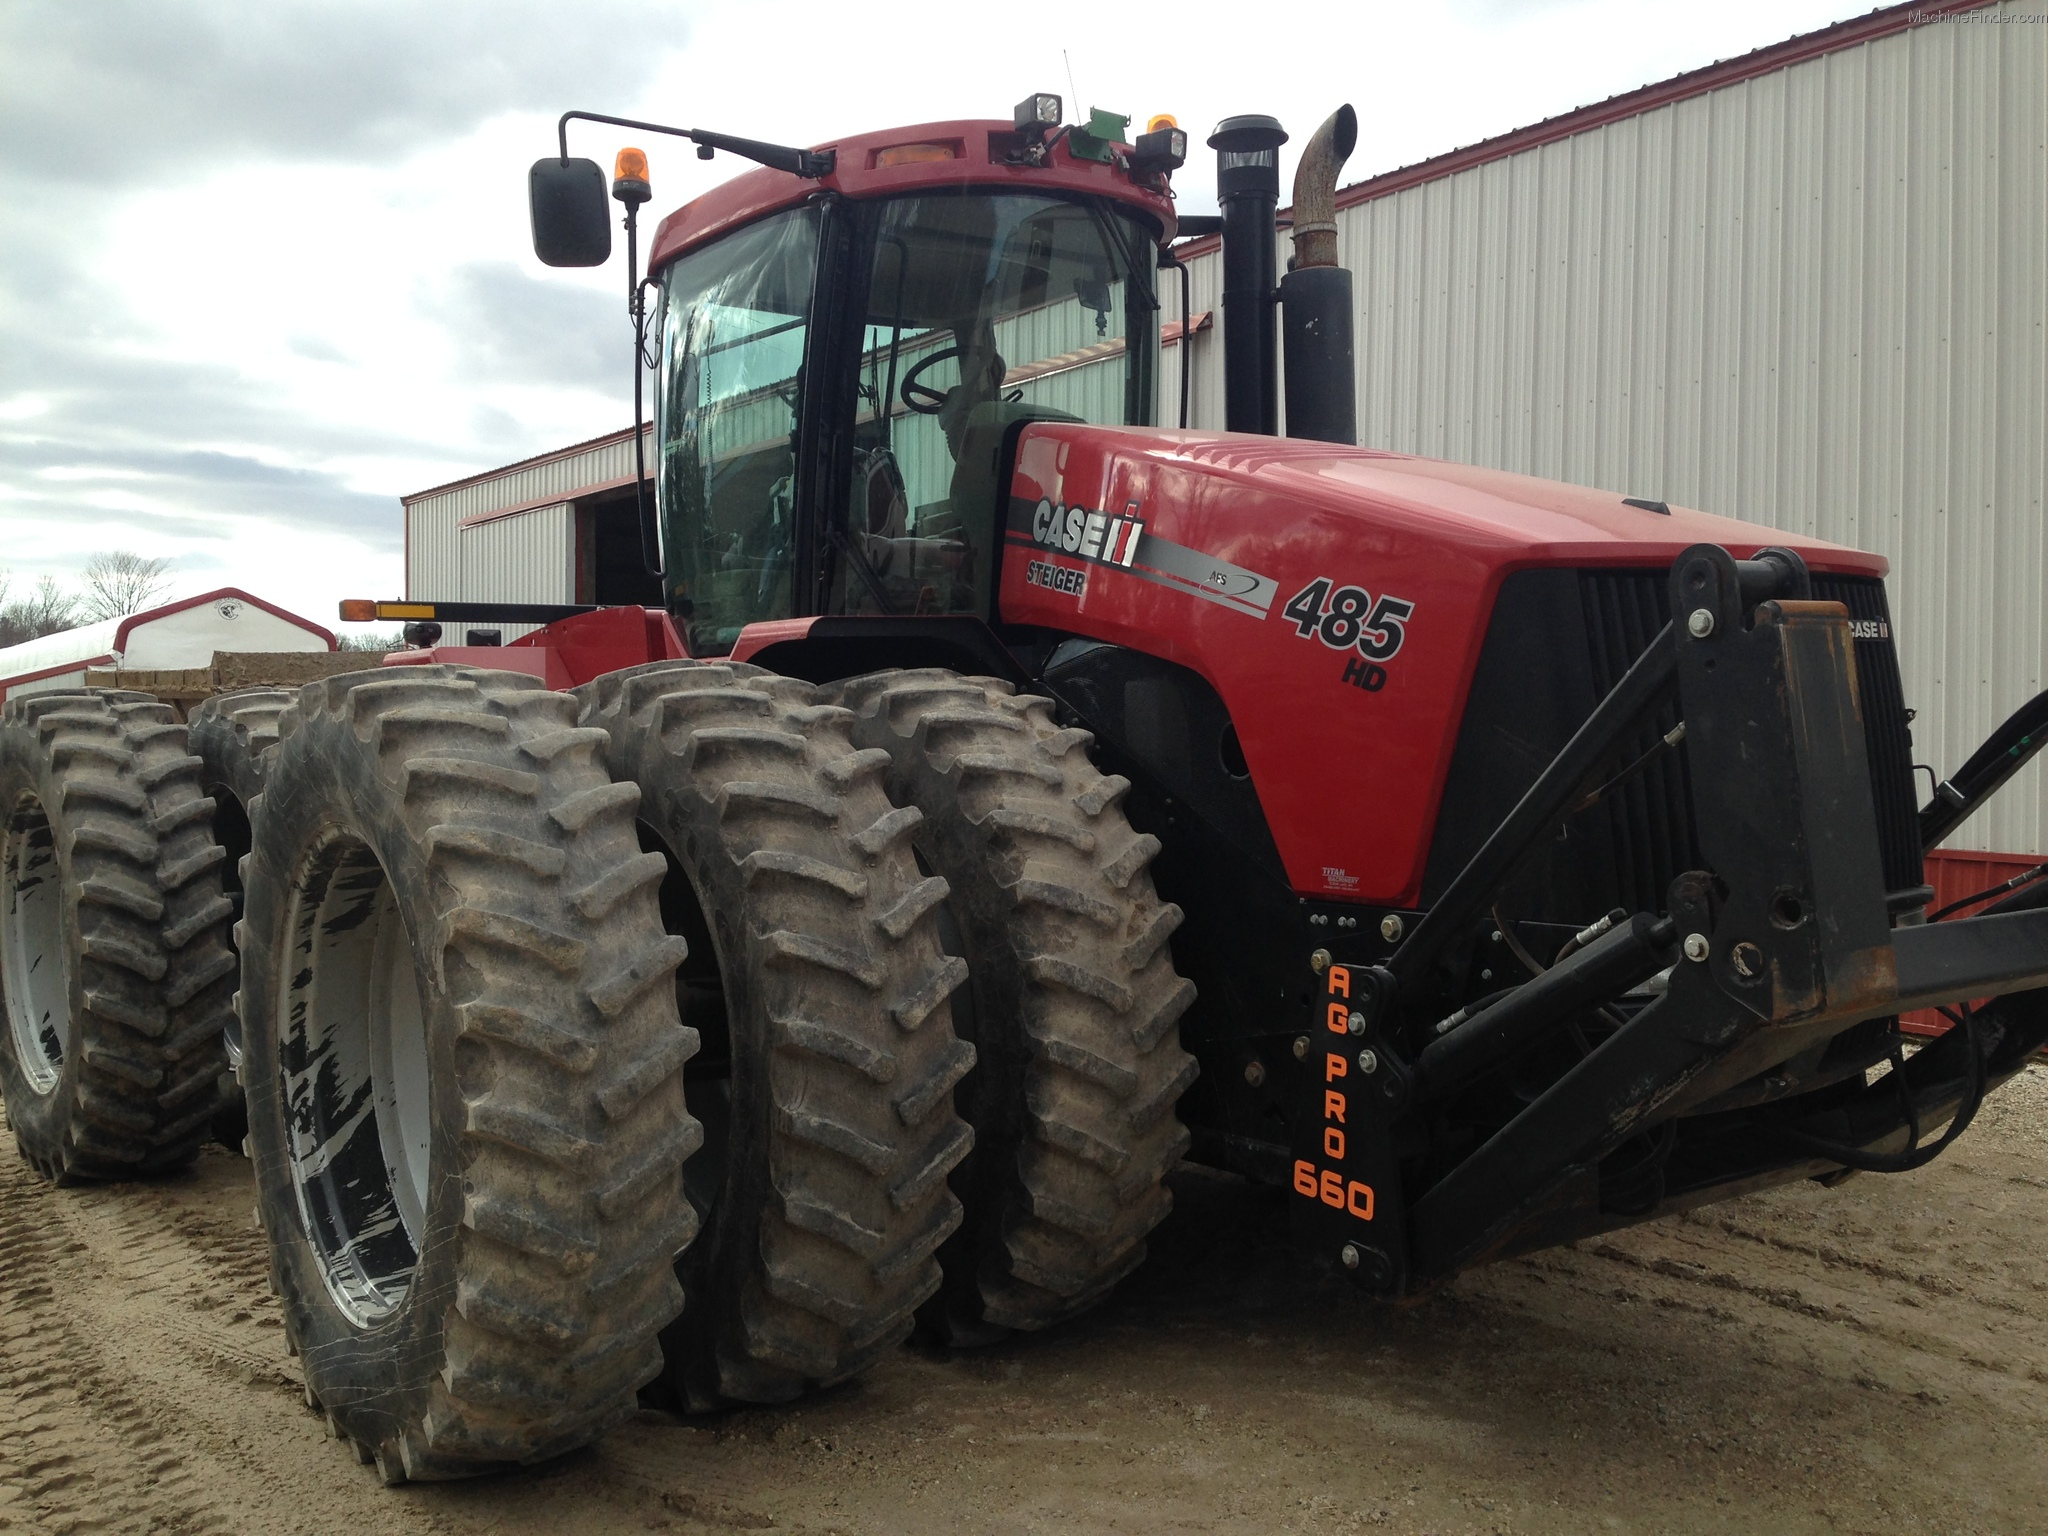 2009 Case Ih Steiger 485 Tractors - Articulated 4wd